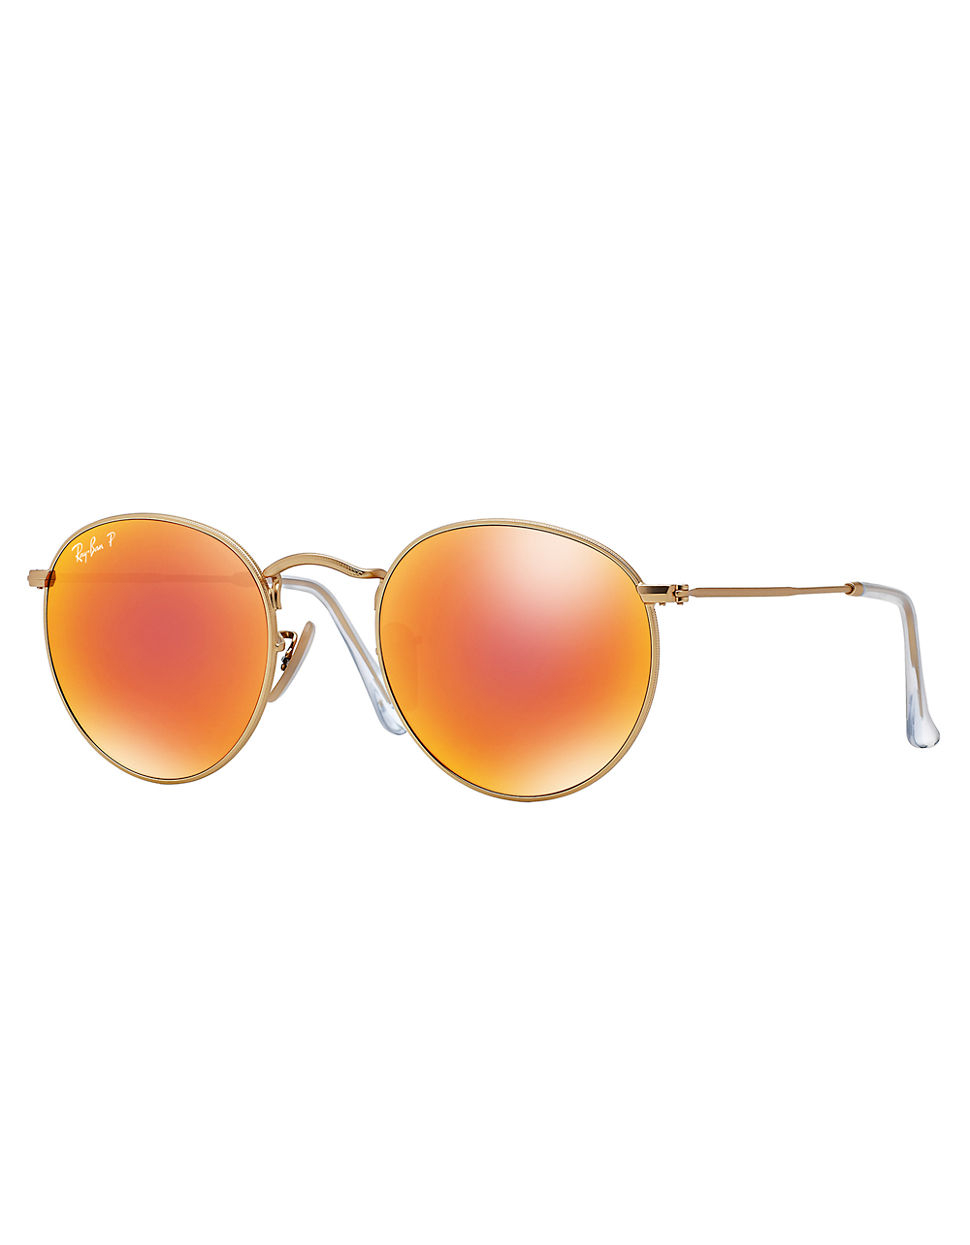 Authorized ray ban online retailers list gallo for List of online retailers